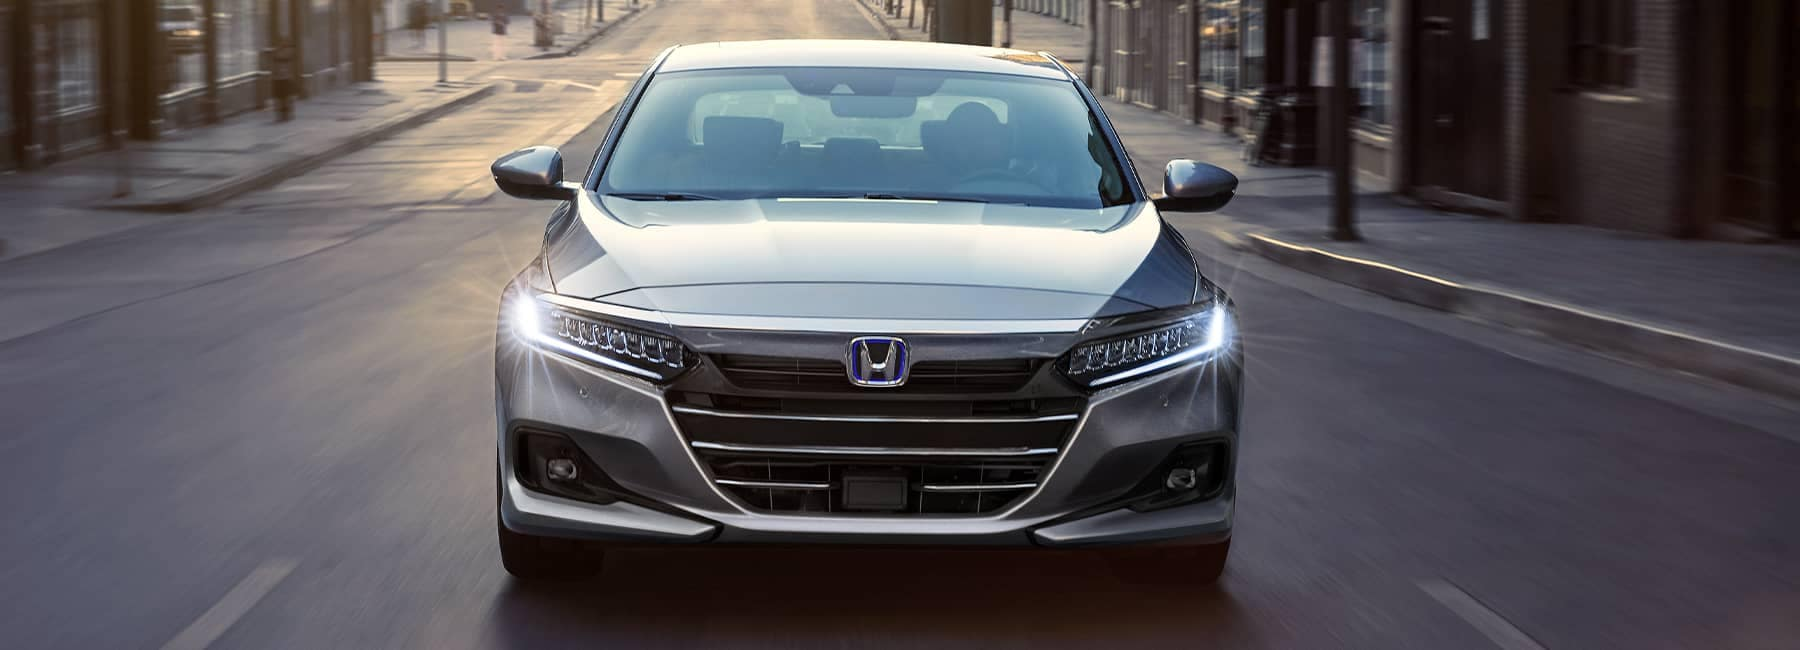 Front angle of a 2021 Silver Honda Accord driving up a city road